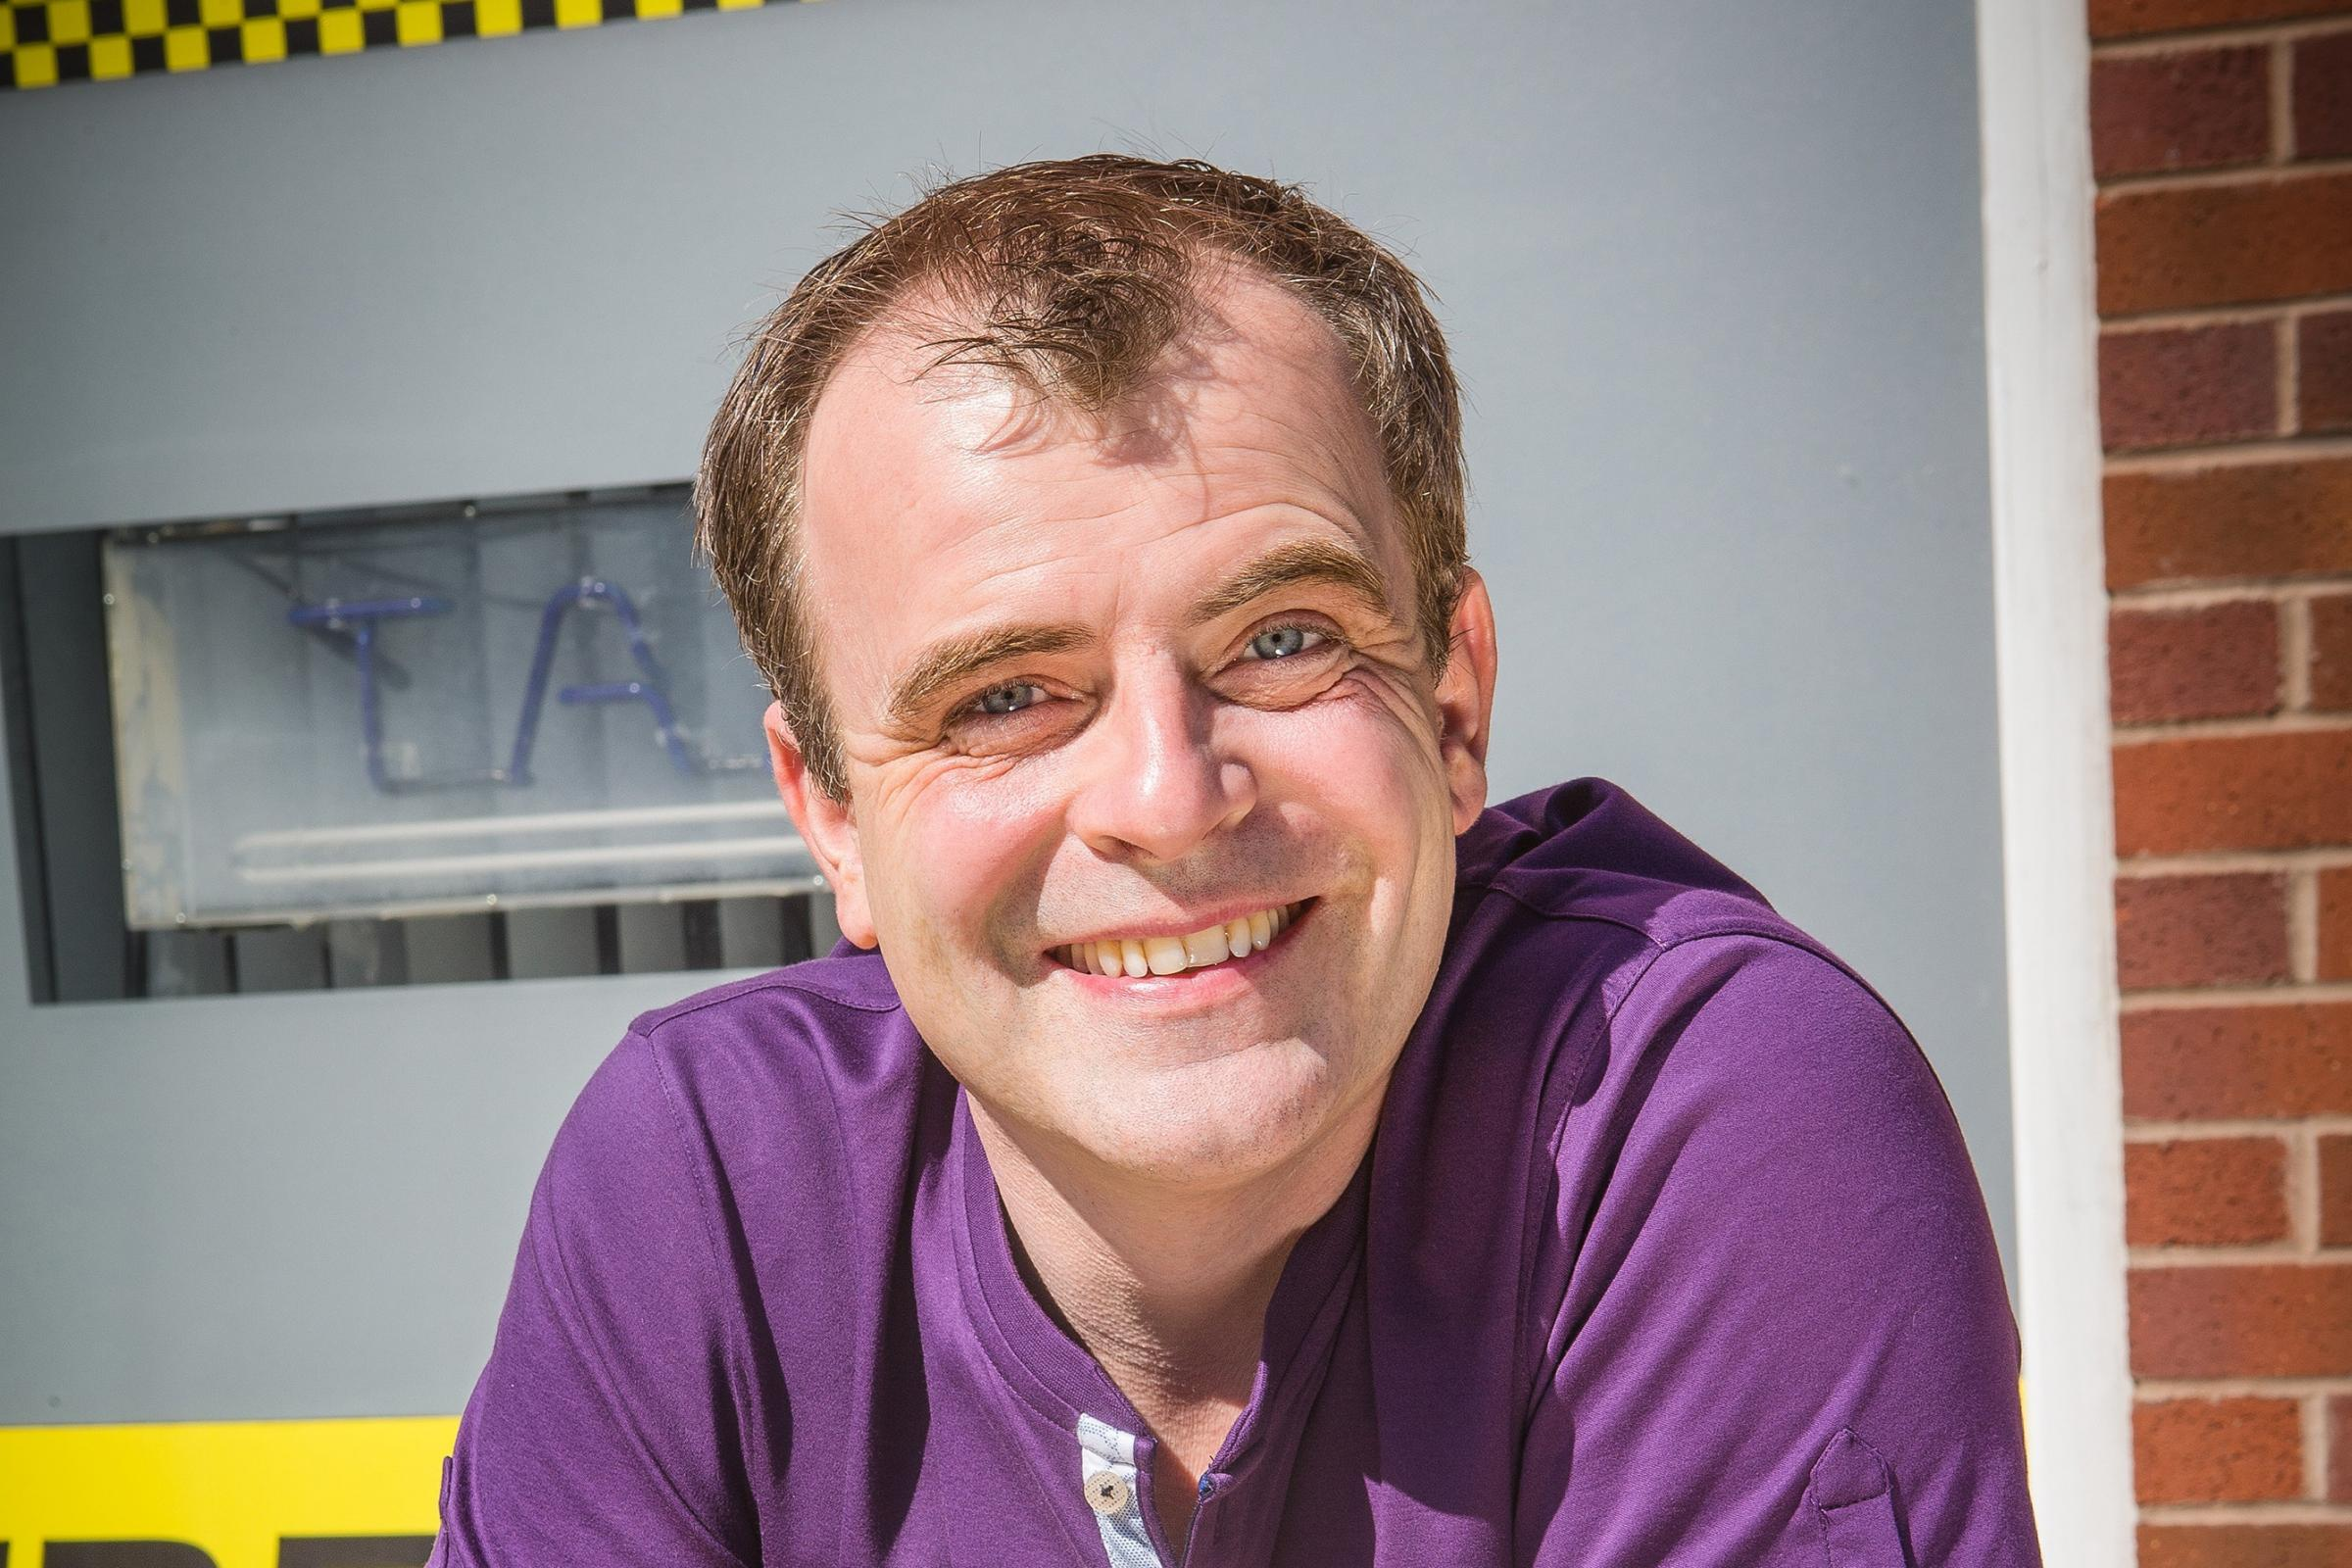 Coronation Street's Steve McDonald to marry for the 7th time (ITV)